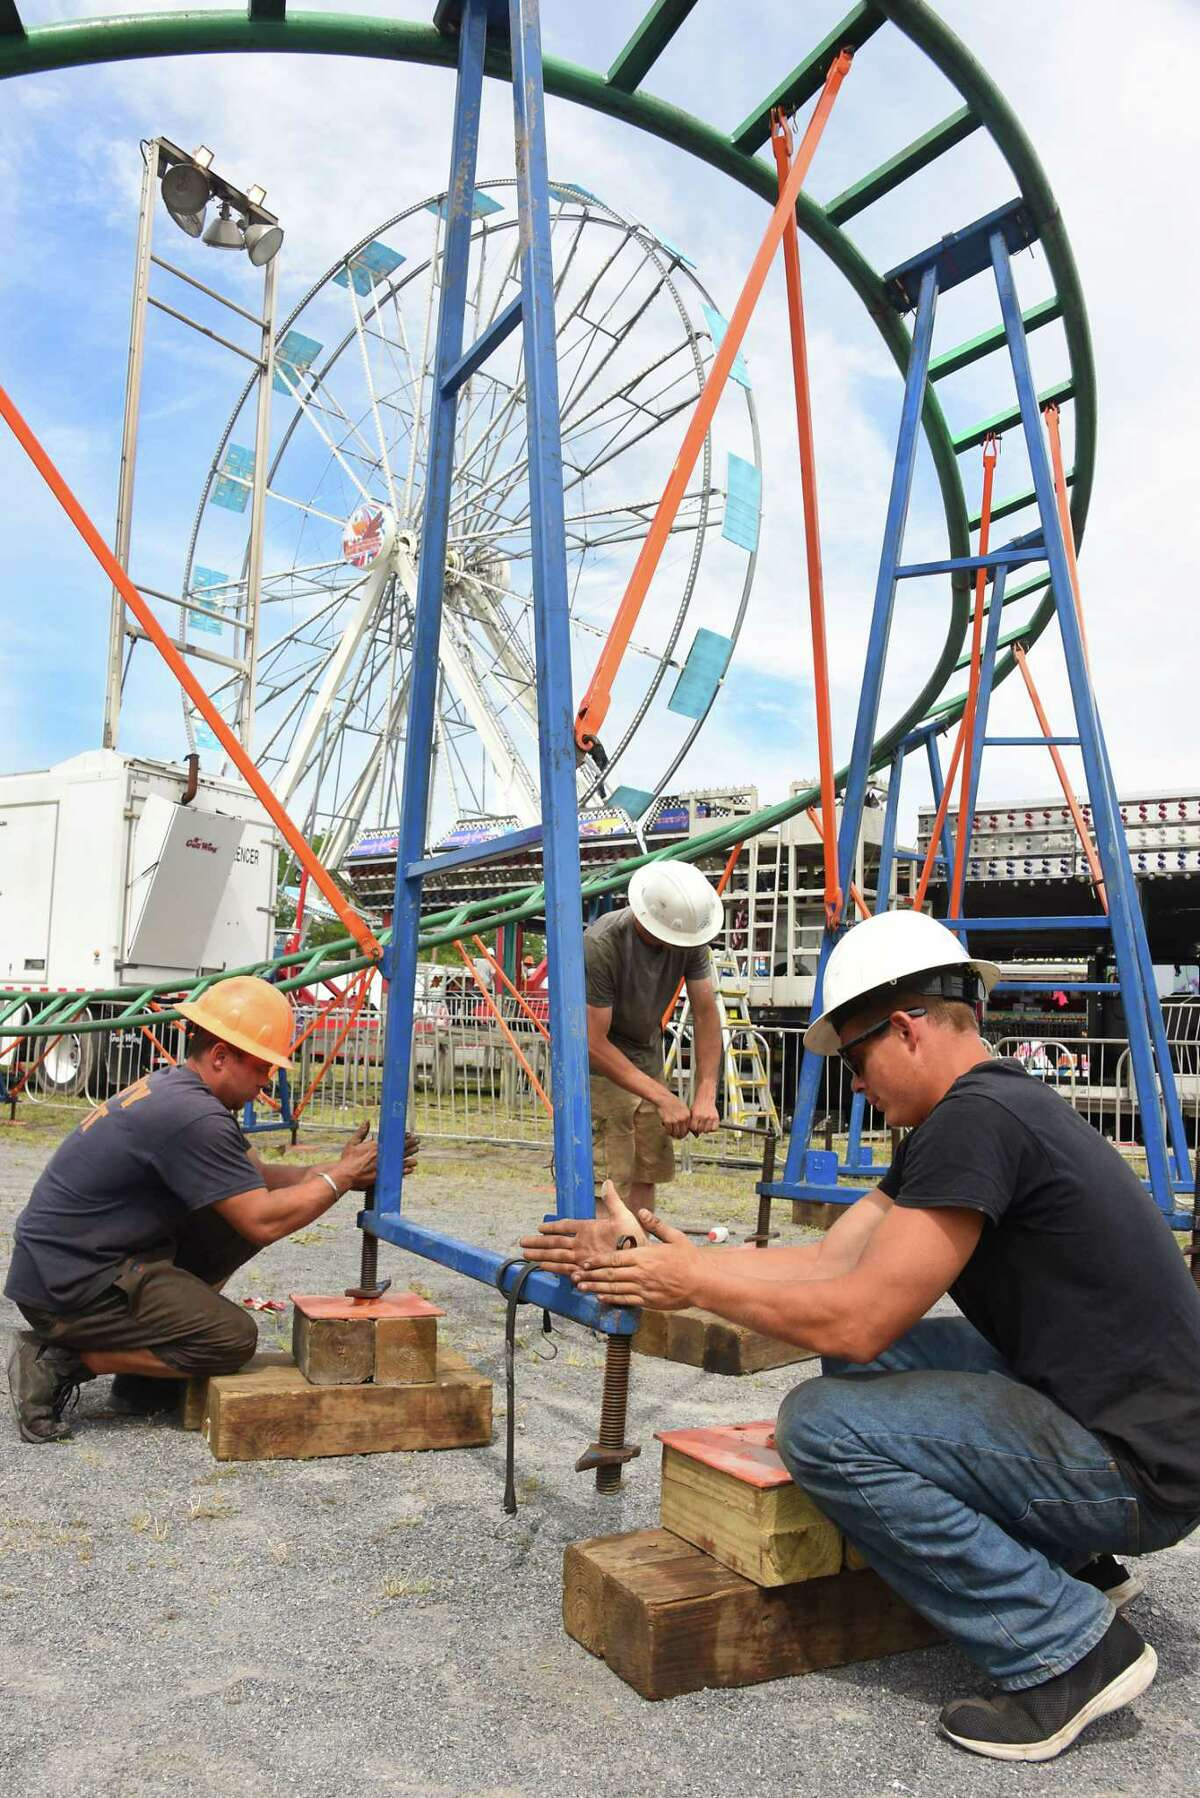 Fair workers set up for opening day tomorrow at the Altamont Fair Monday, Aug. 14, 2017 in Altamont, N.Y. (Lori Van Buren / Times Union)